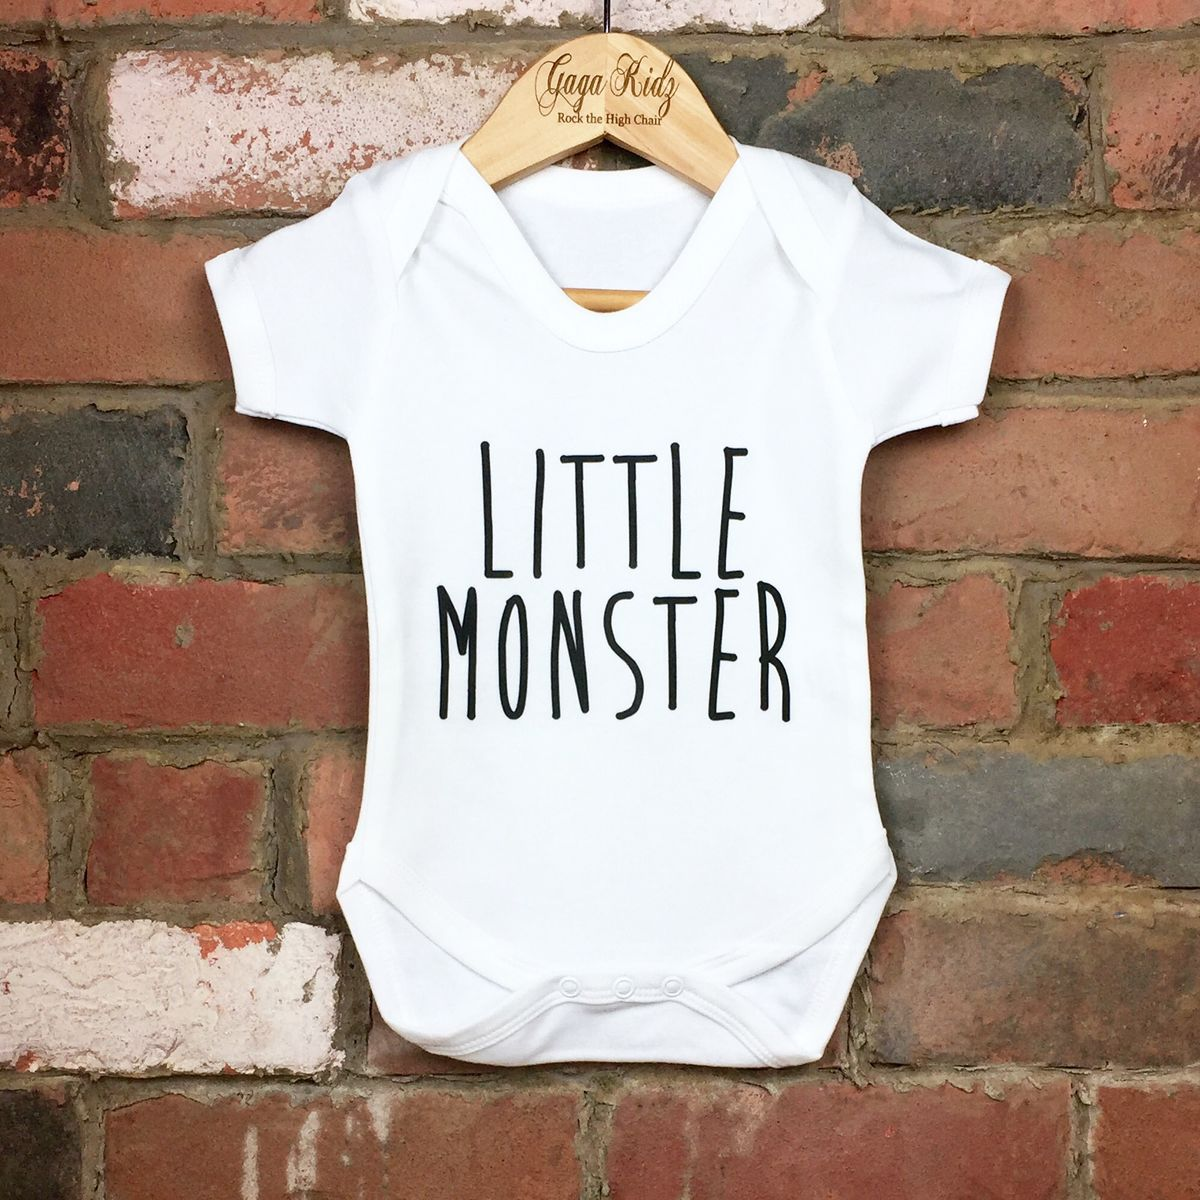 Little Monster Baby/Toddler Bodysuit (various sizes) - product images  of